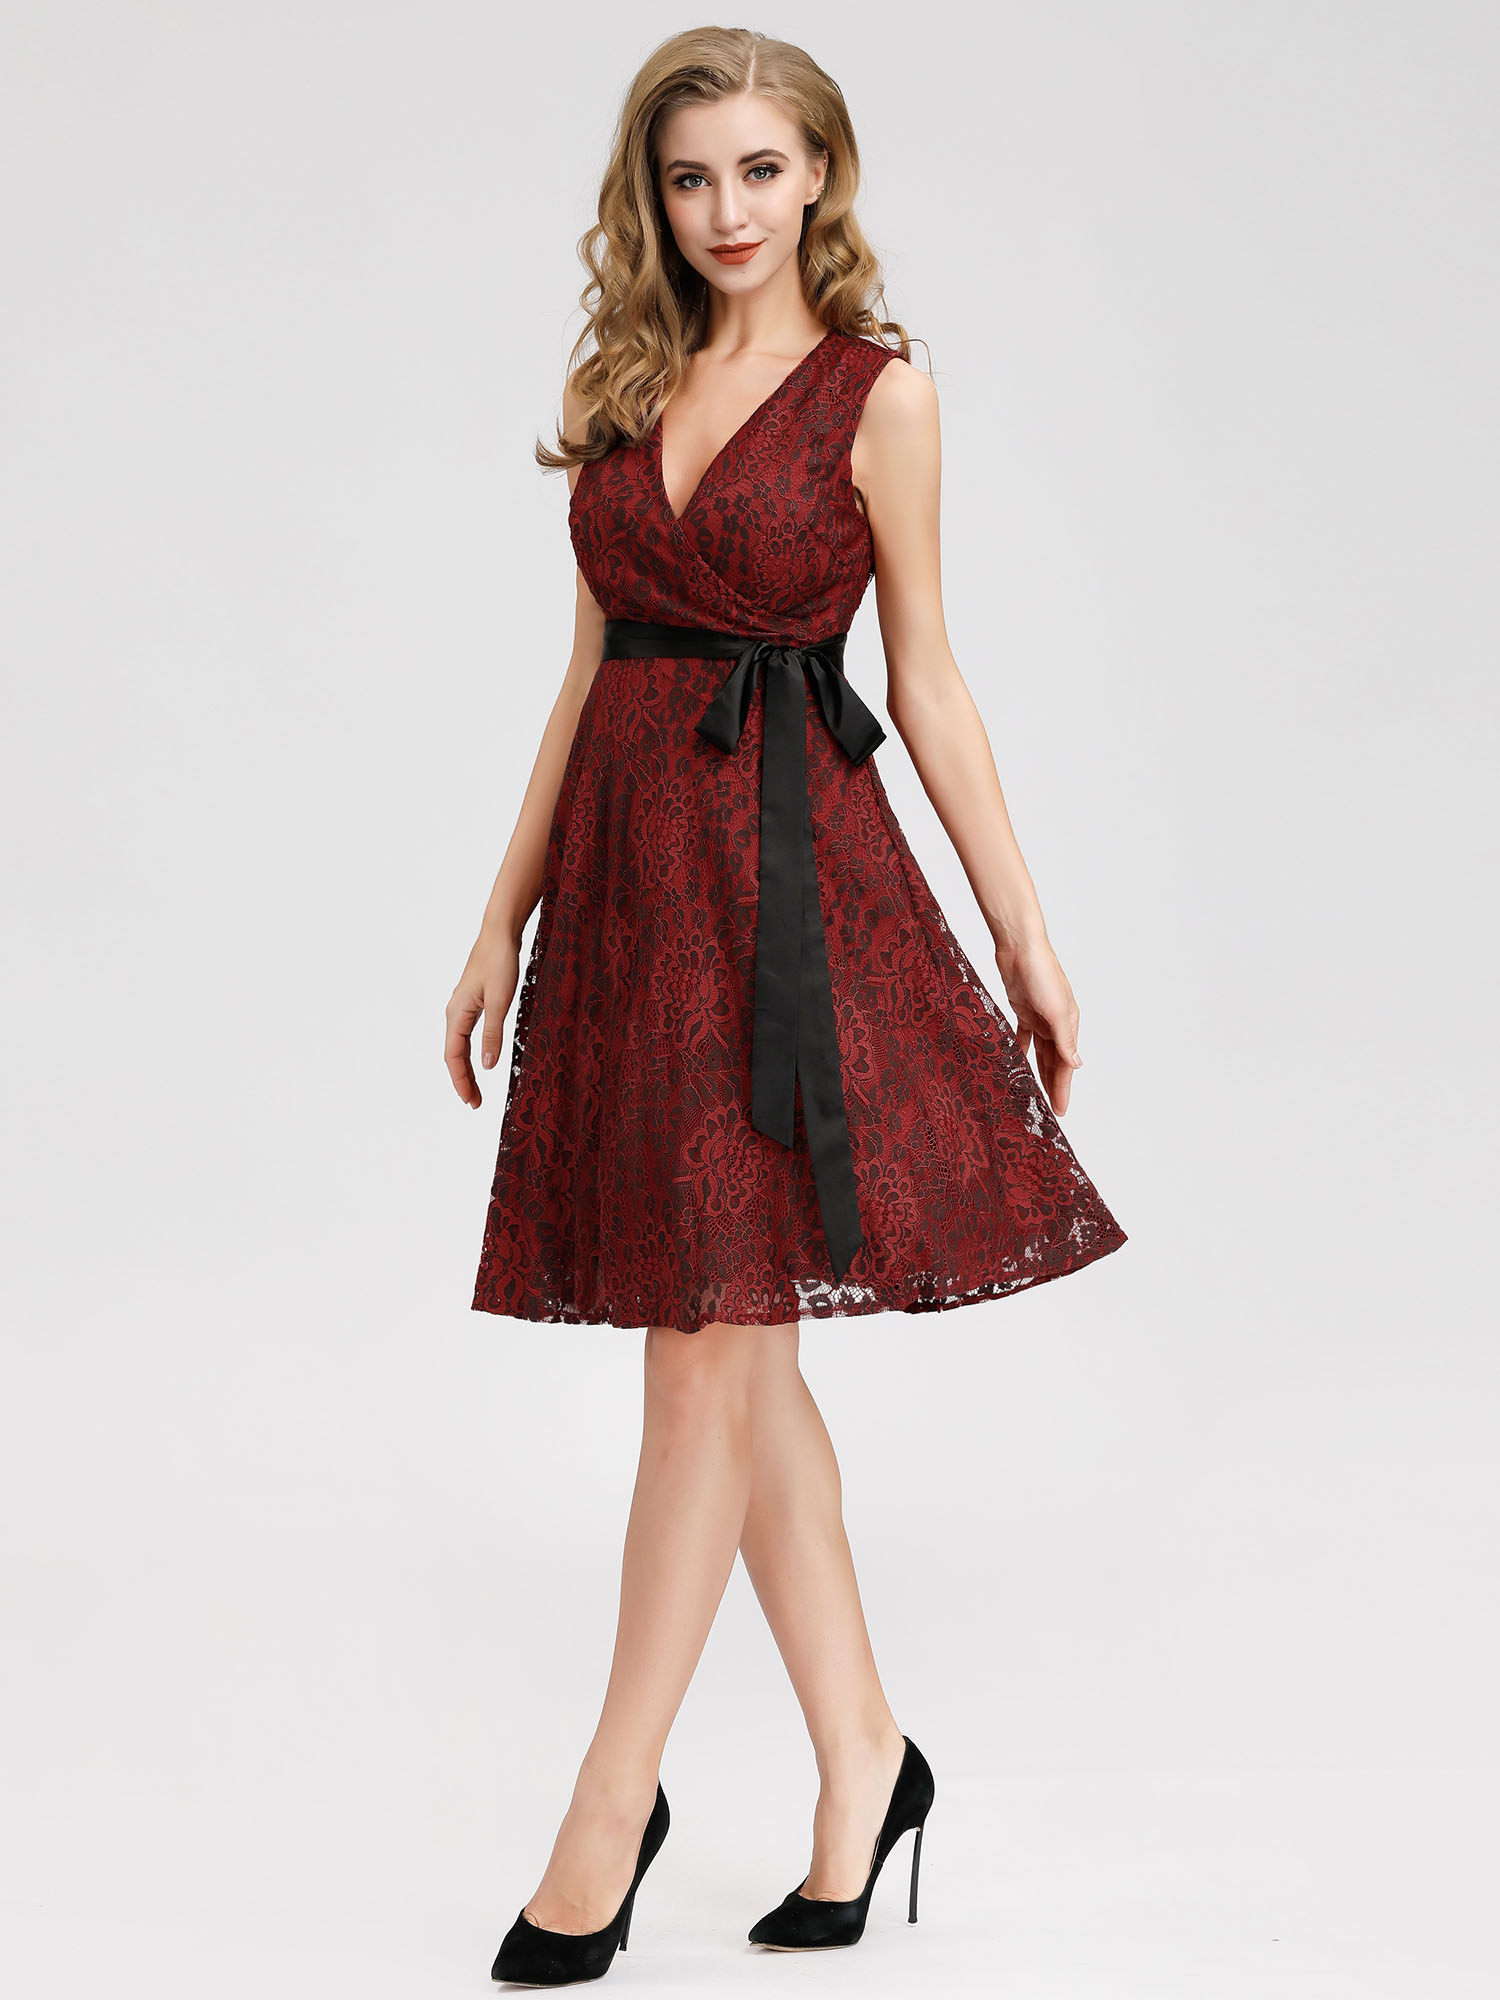 Alisa-Pan-Cocktail-Dress-Burgundy-A-line-Lace-Sleeveless-Short-Party-Gown-04025